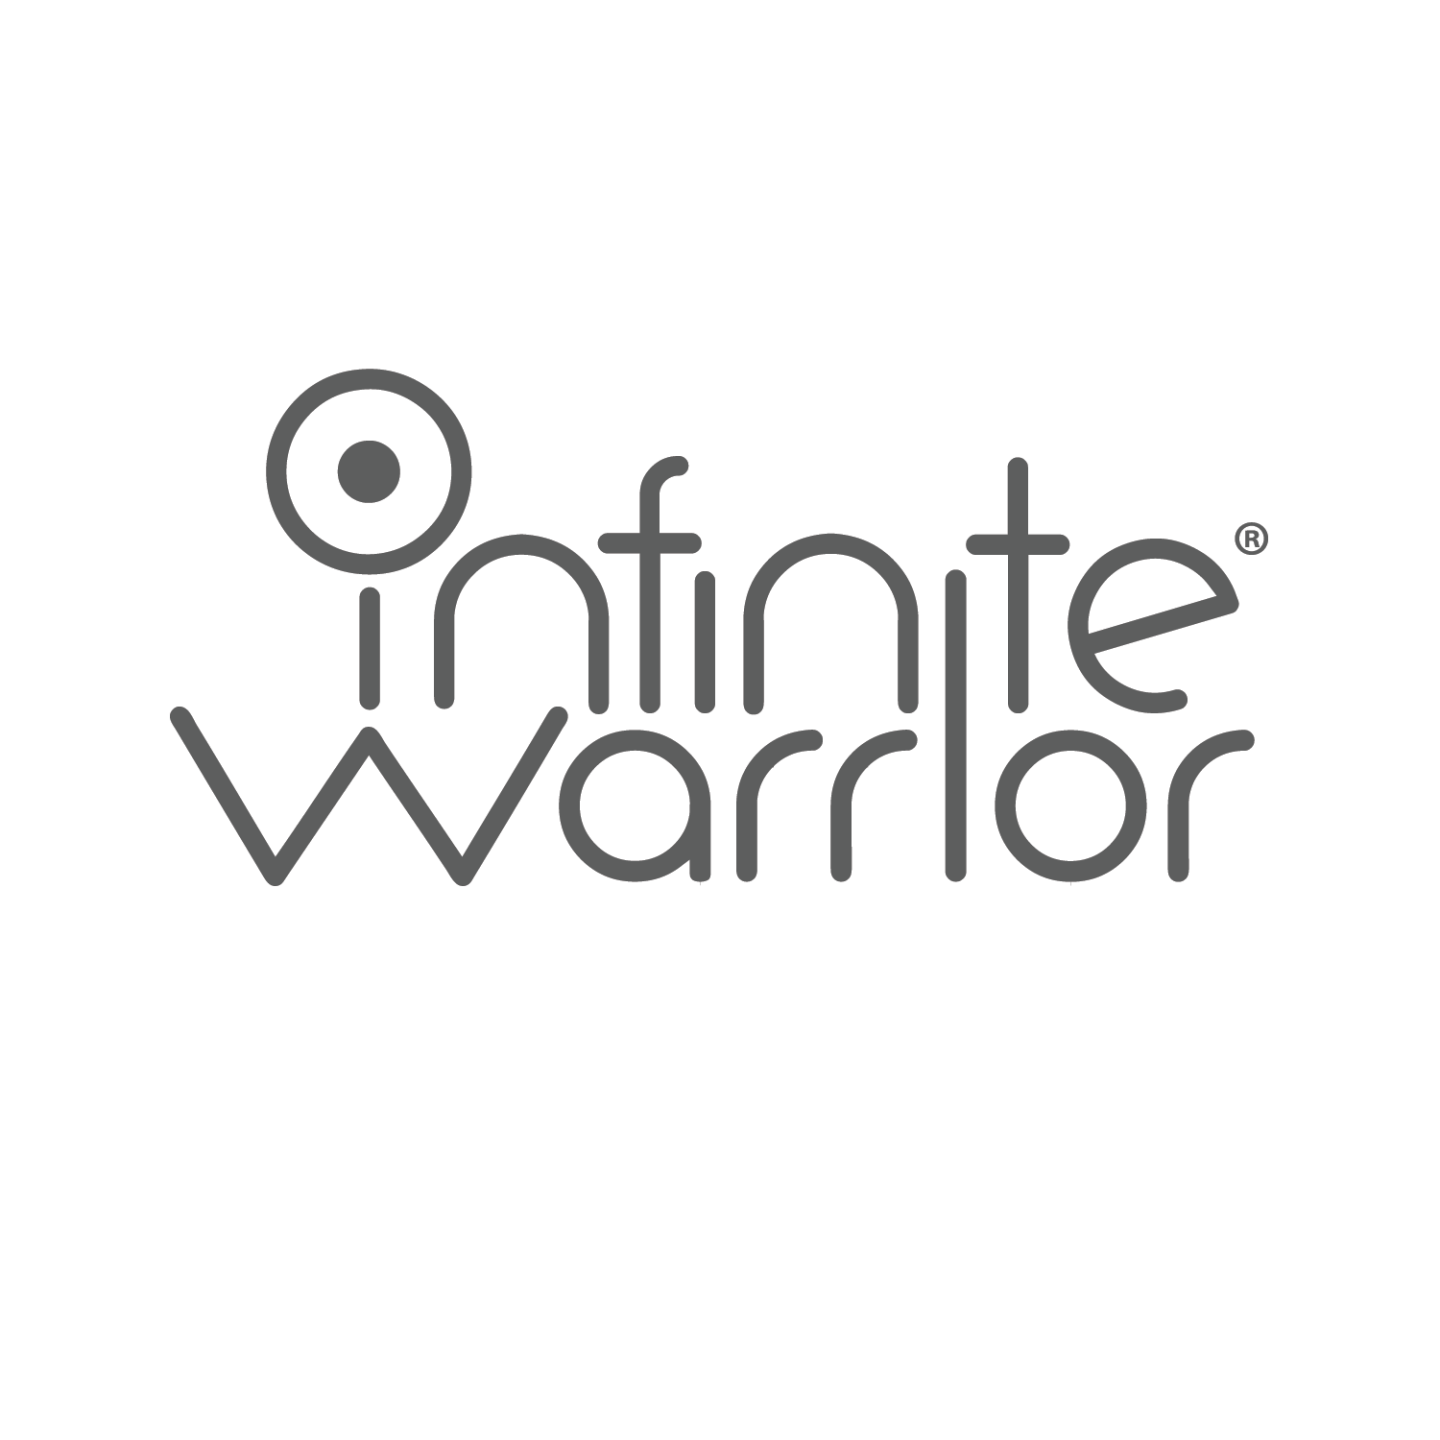 Infinite Warrior